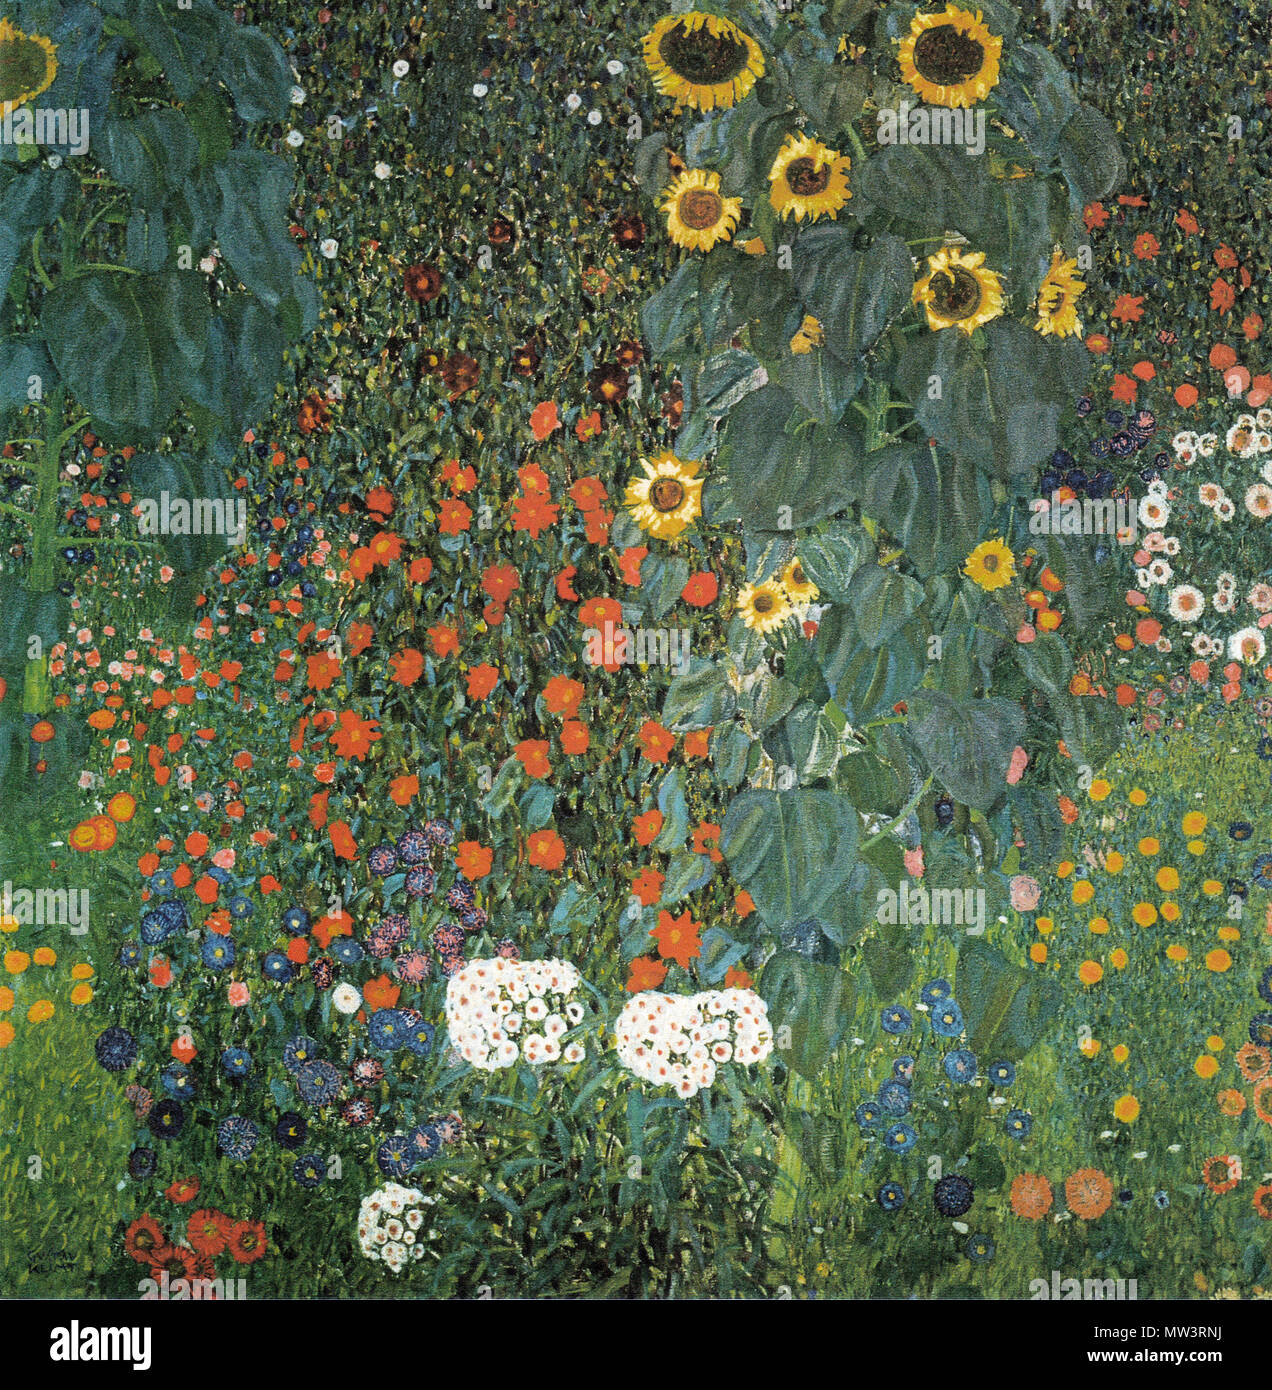 GUSTAV KLIMT (1862-1918) Austrian symbolist painter. The Sunflower painted about 1906 - Stock Image